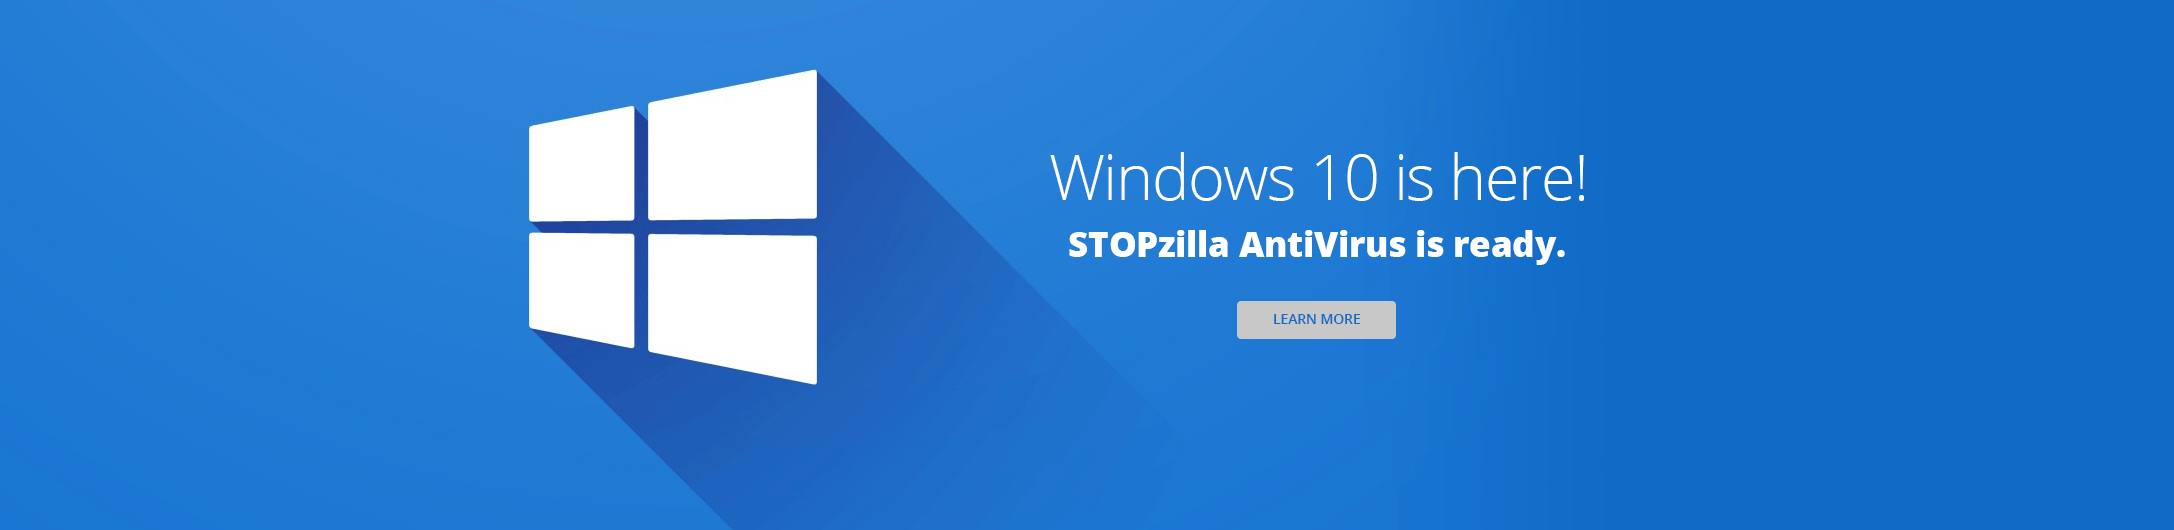 AntiVirus Ready for Windows 10